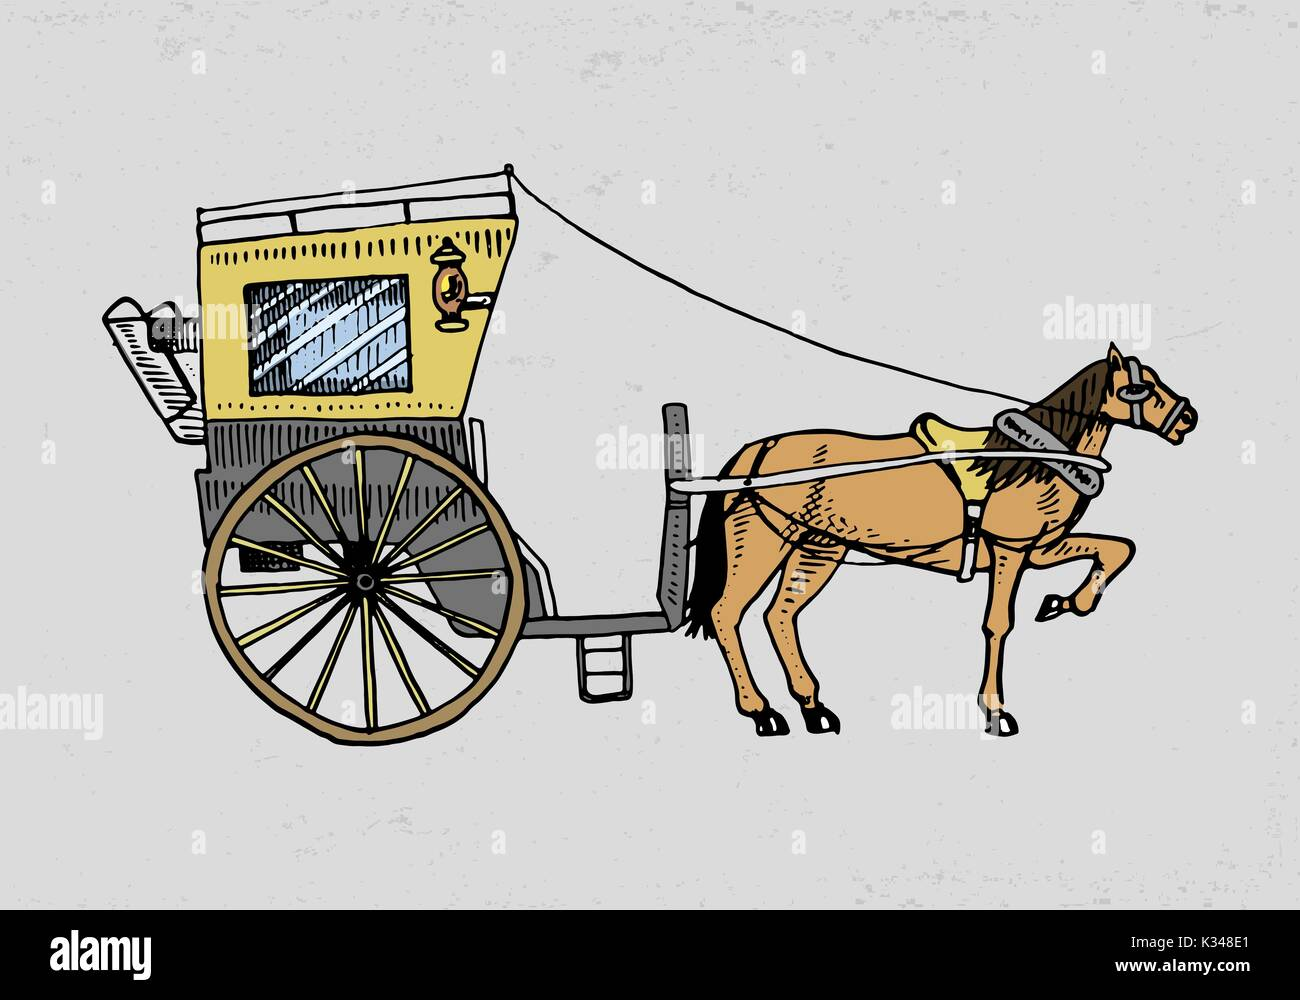 Horse Drawn Carriage Or Coach Travel Illustration Engraved Hand Stock Vector Image Art Alamy